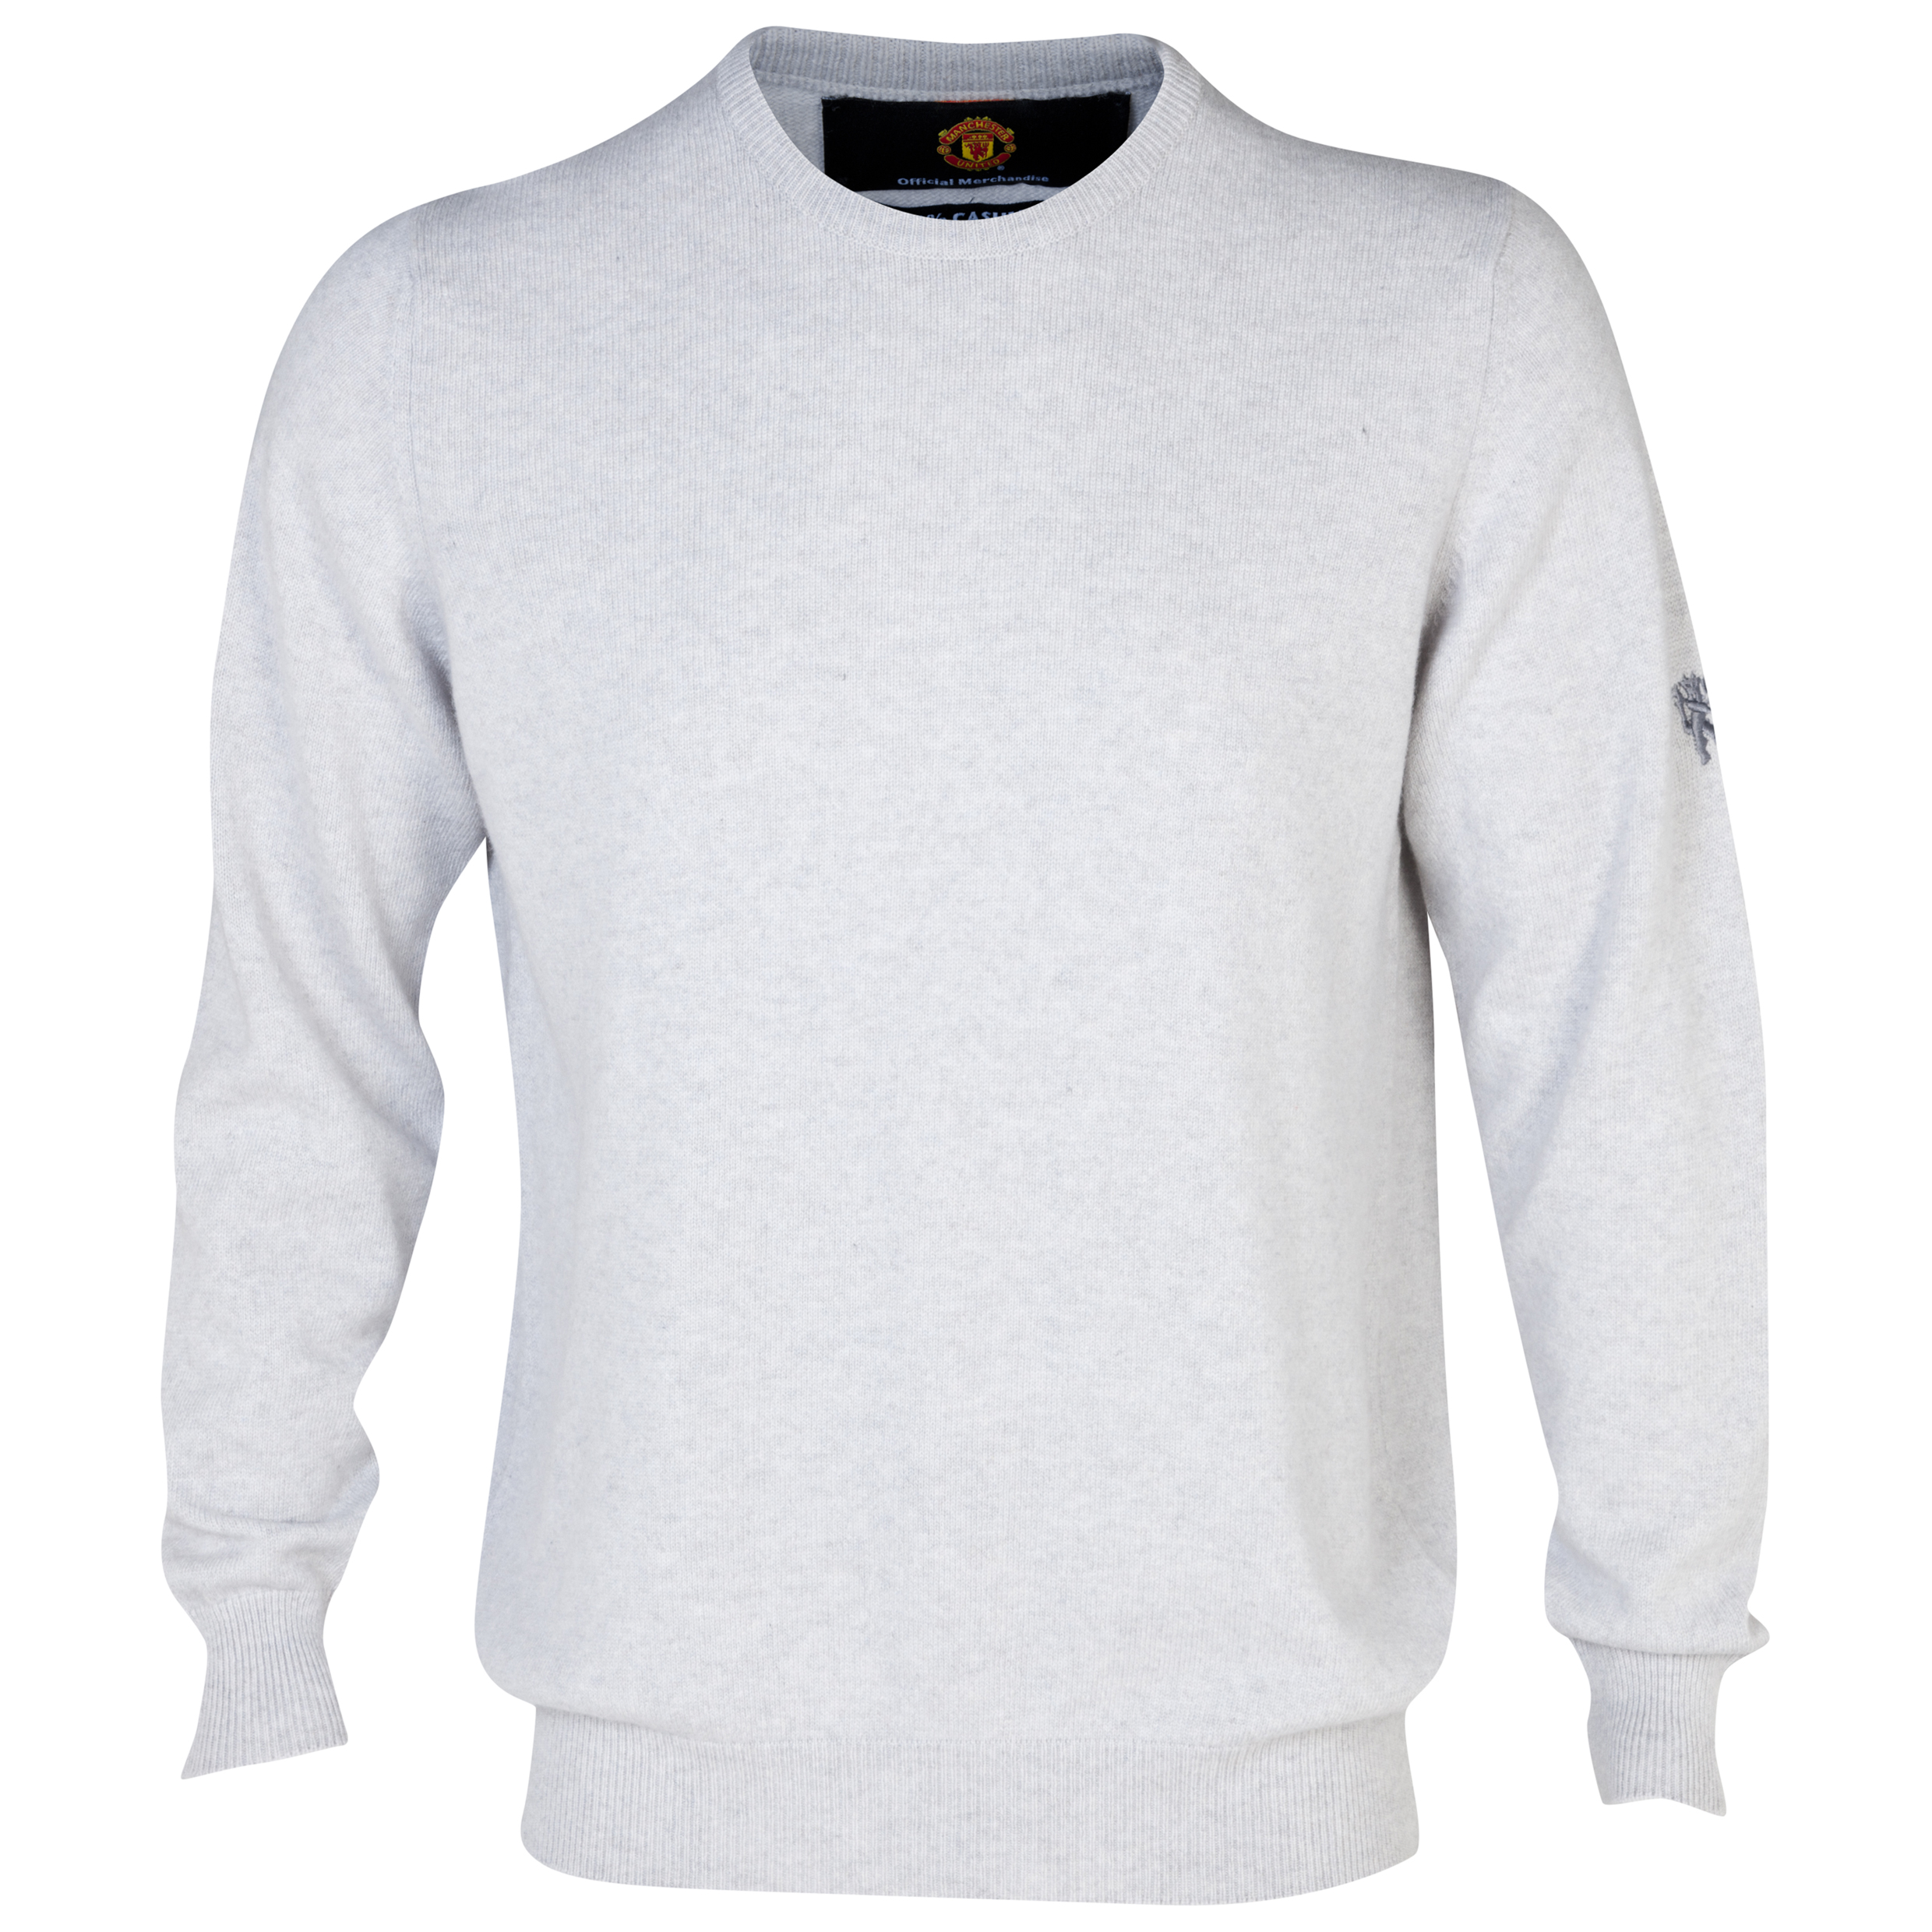 Manchester United Cashmere Crew Neck Sweater - Mens